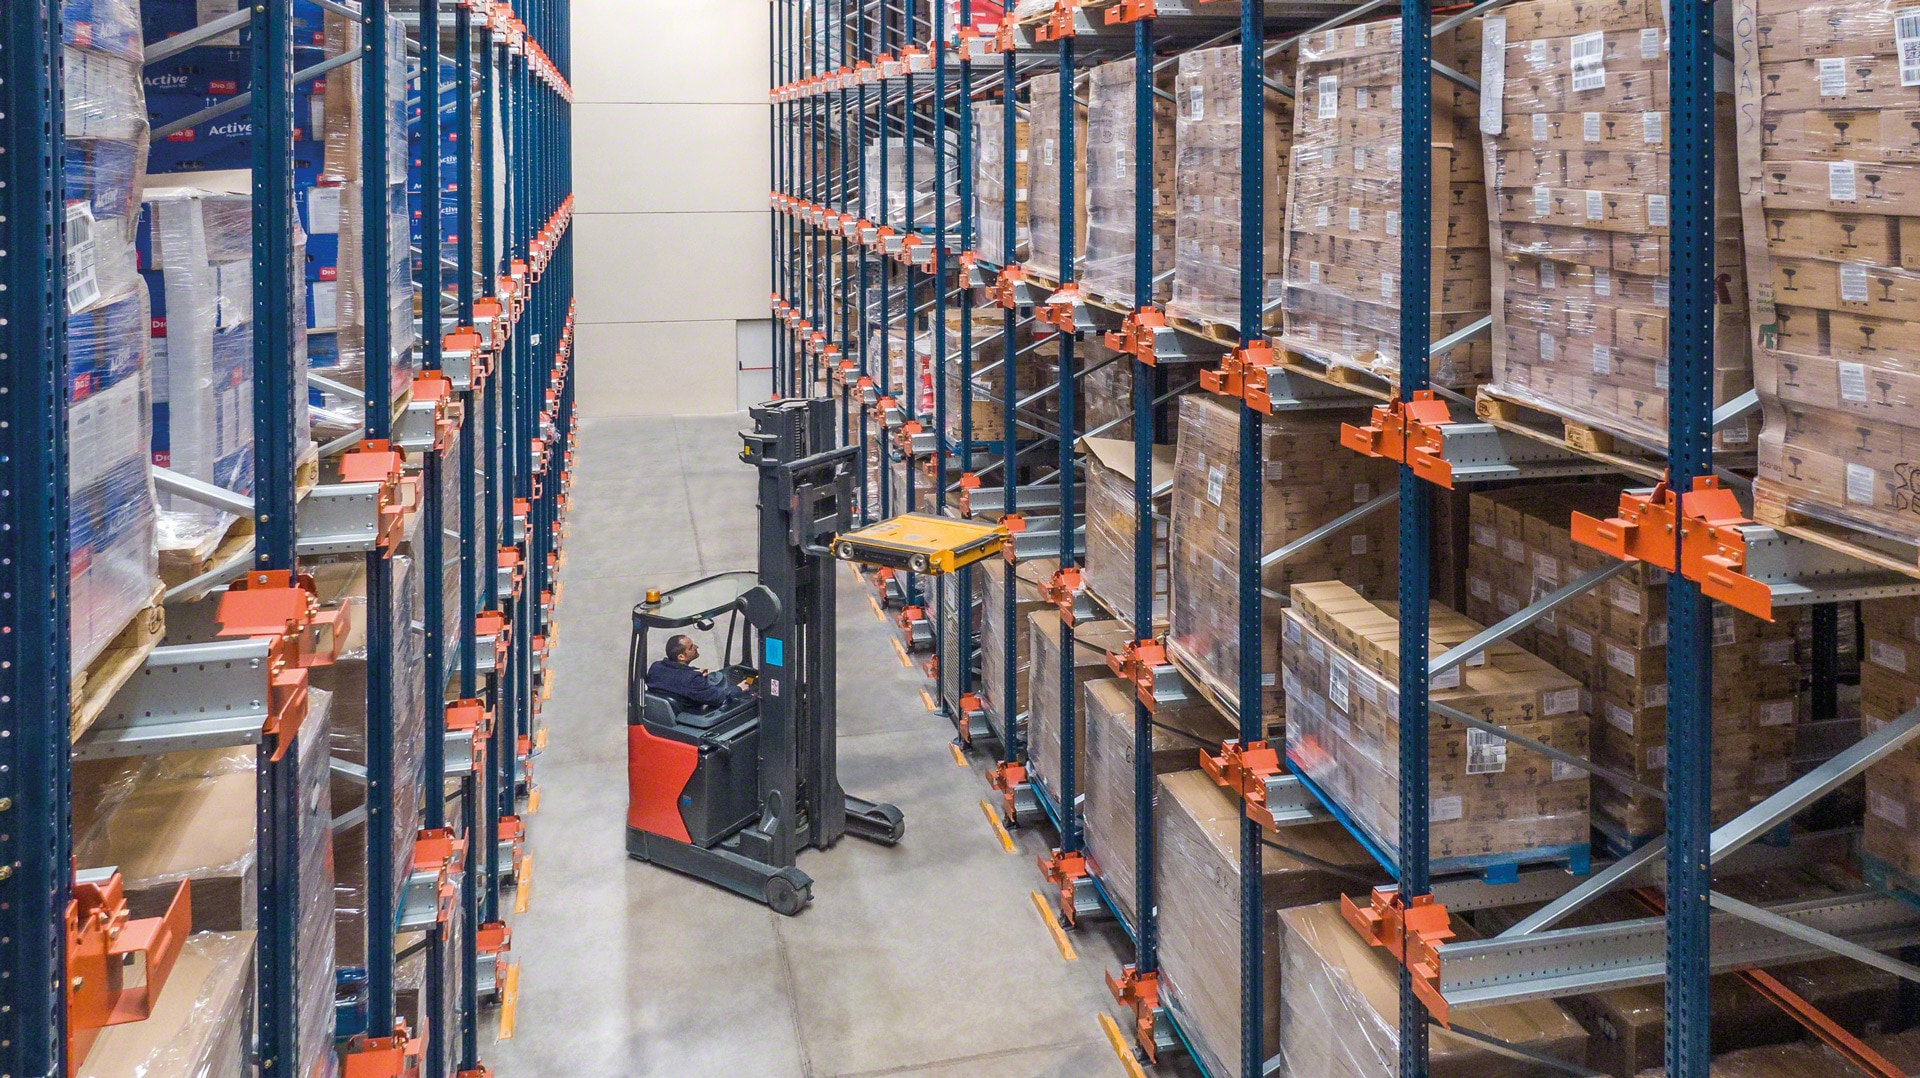 Forklift trucks place the shuttle in the storage channel to store or extract the goods in high-density systems